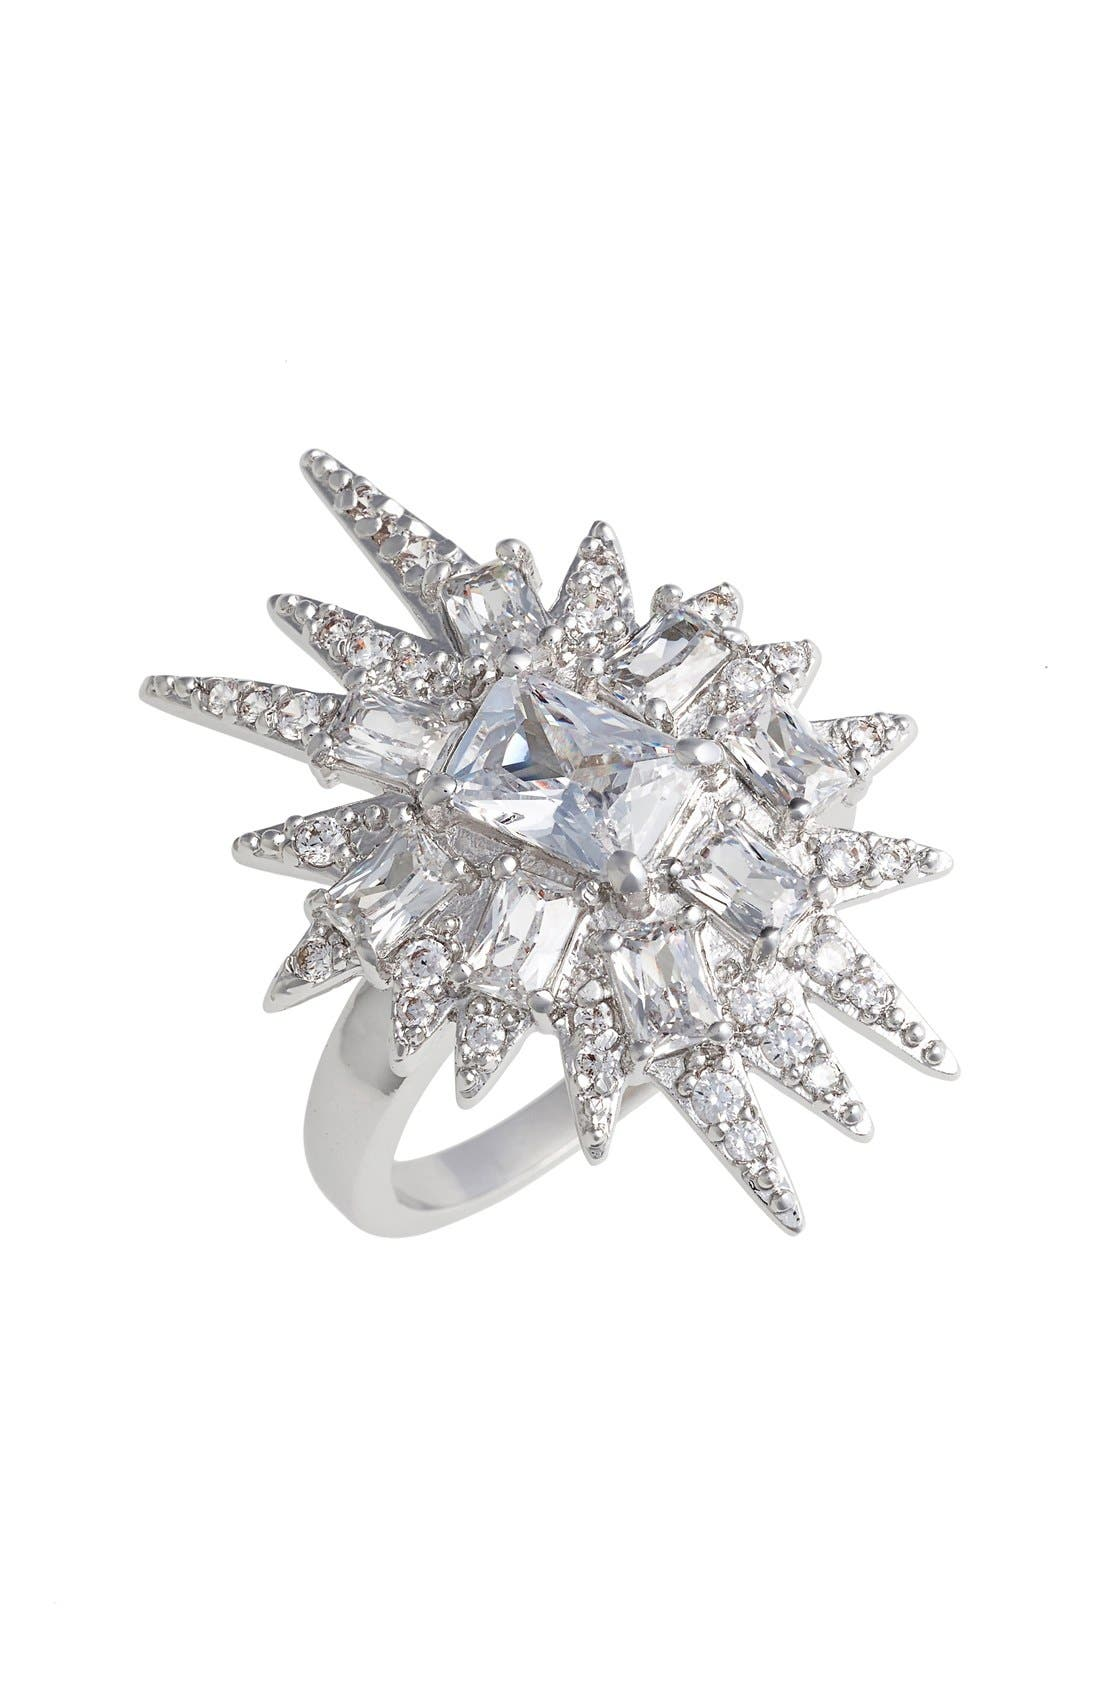 'Explosion' Cubic Zirconia Cocktail Ring,                         Main,                         color, 040